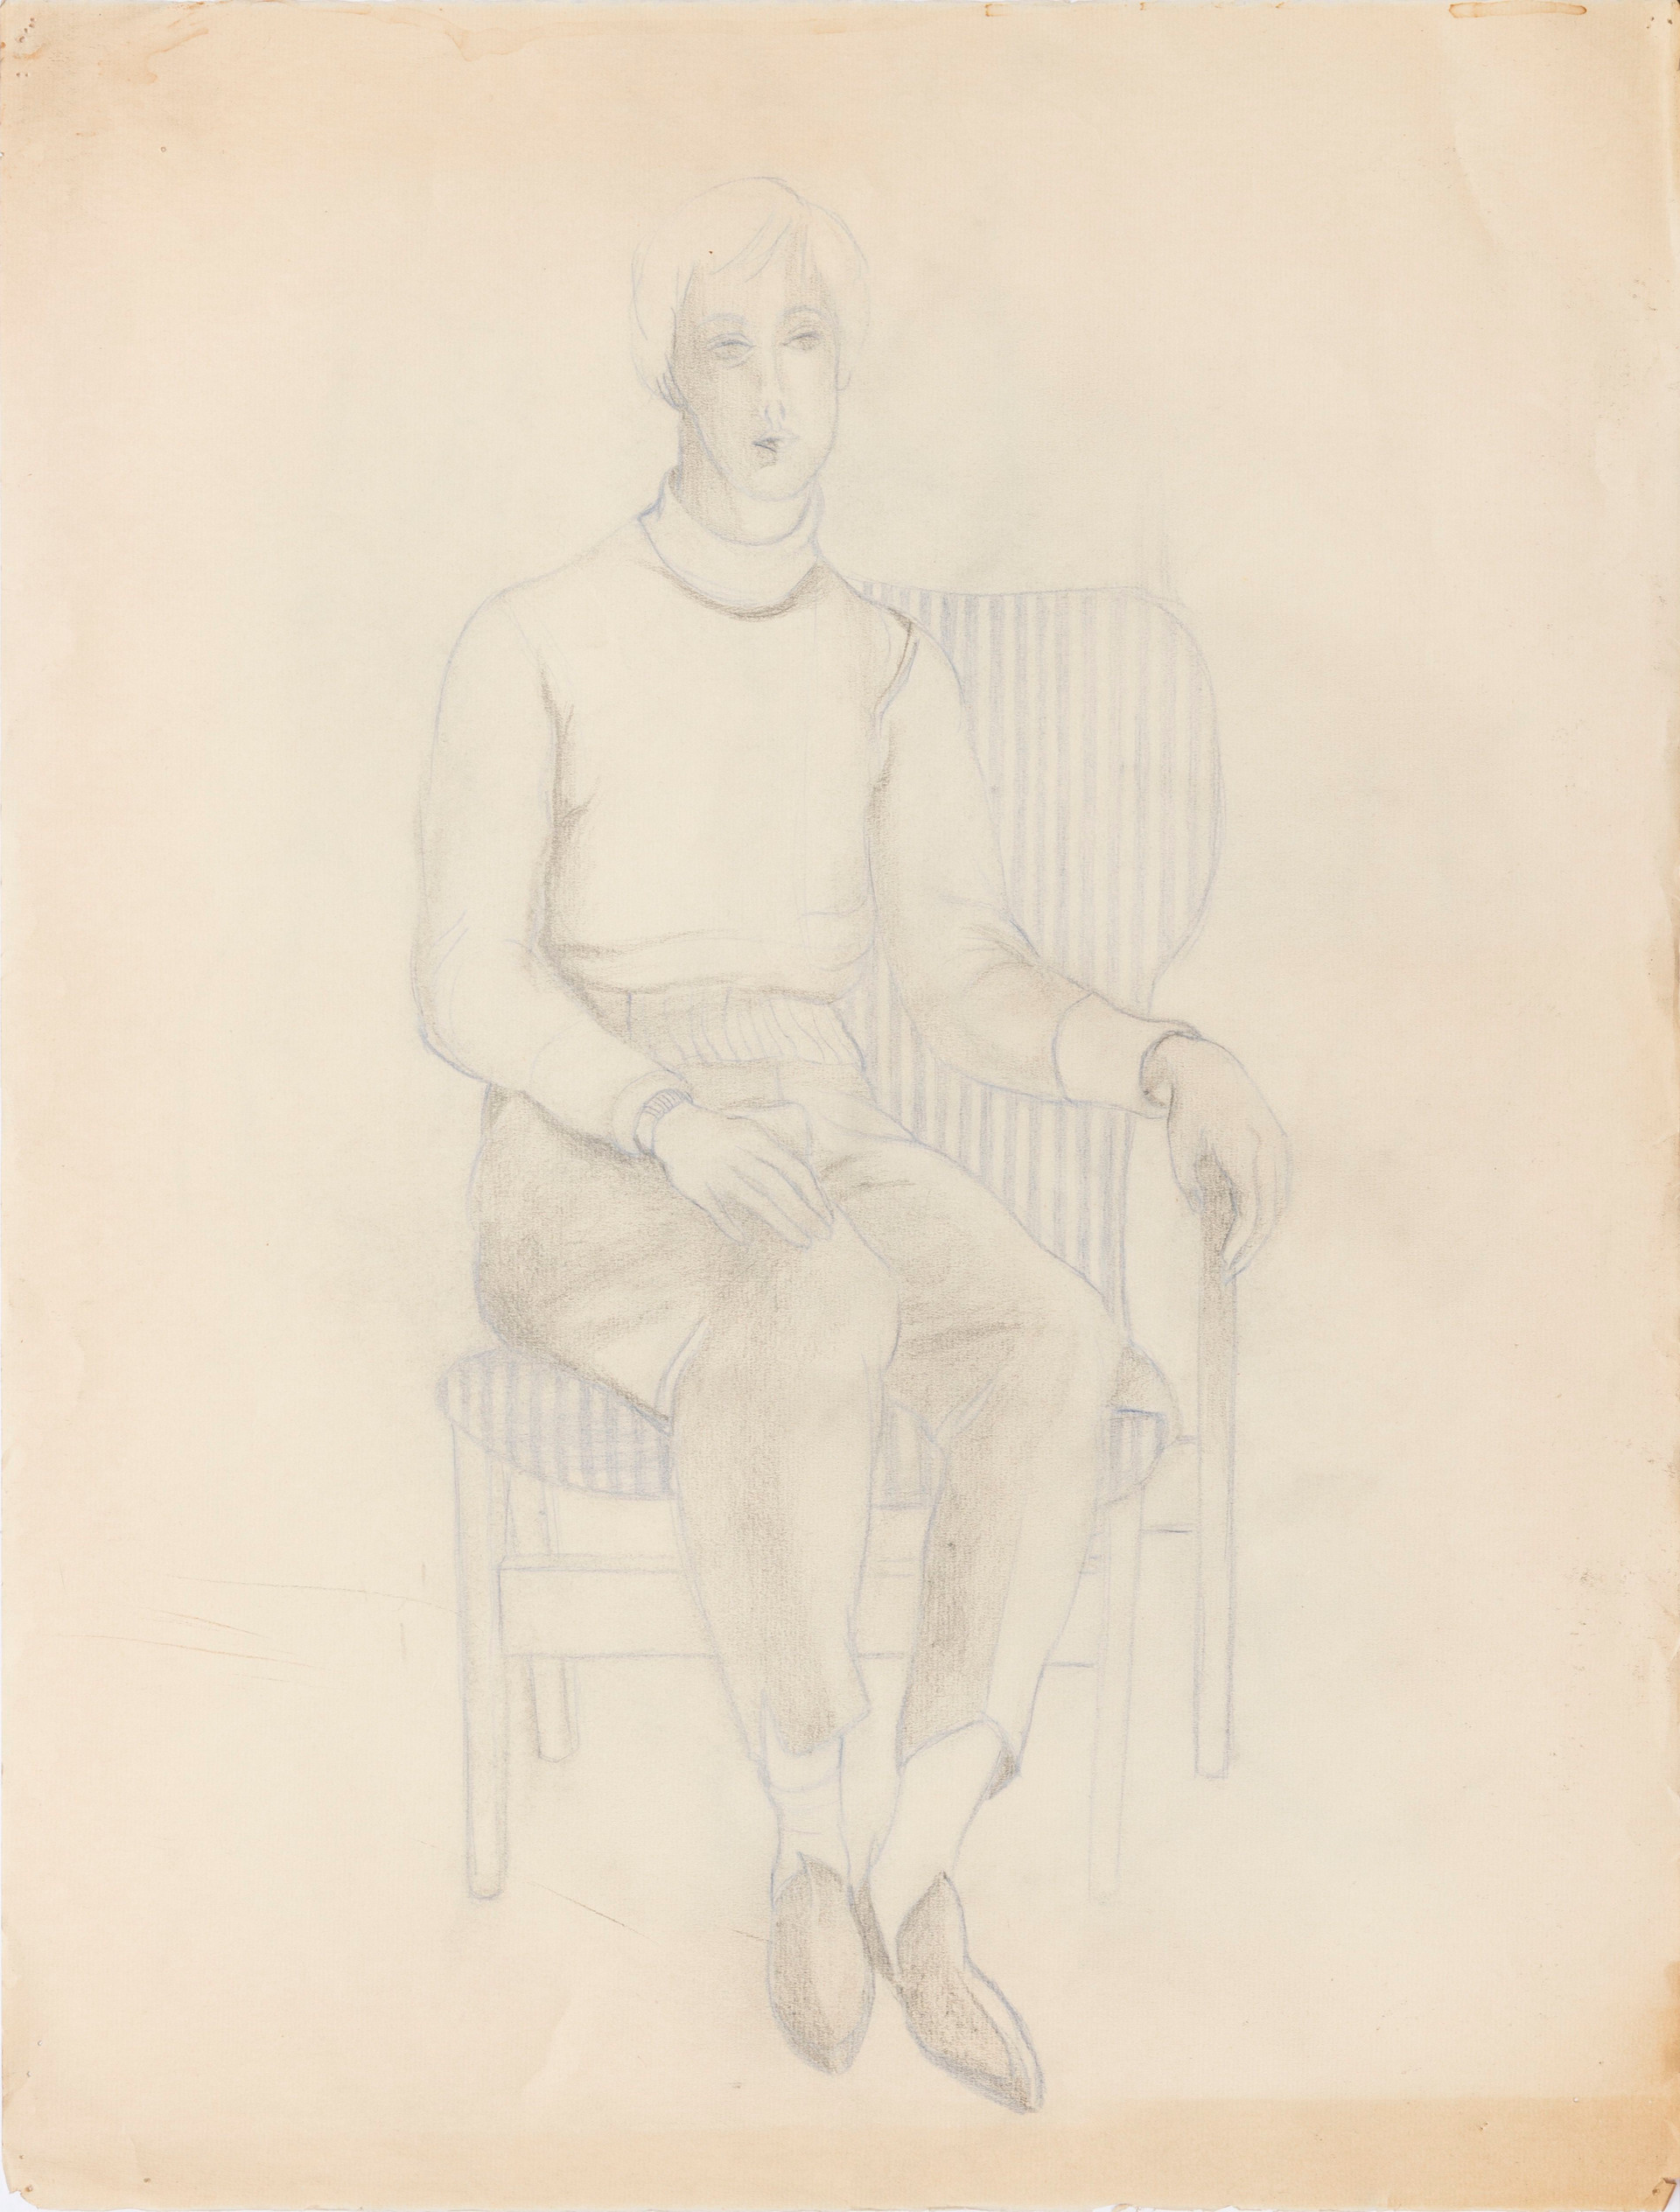 Untitled - figure sitting in chair with blue stripes